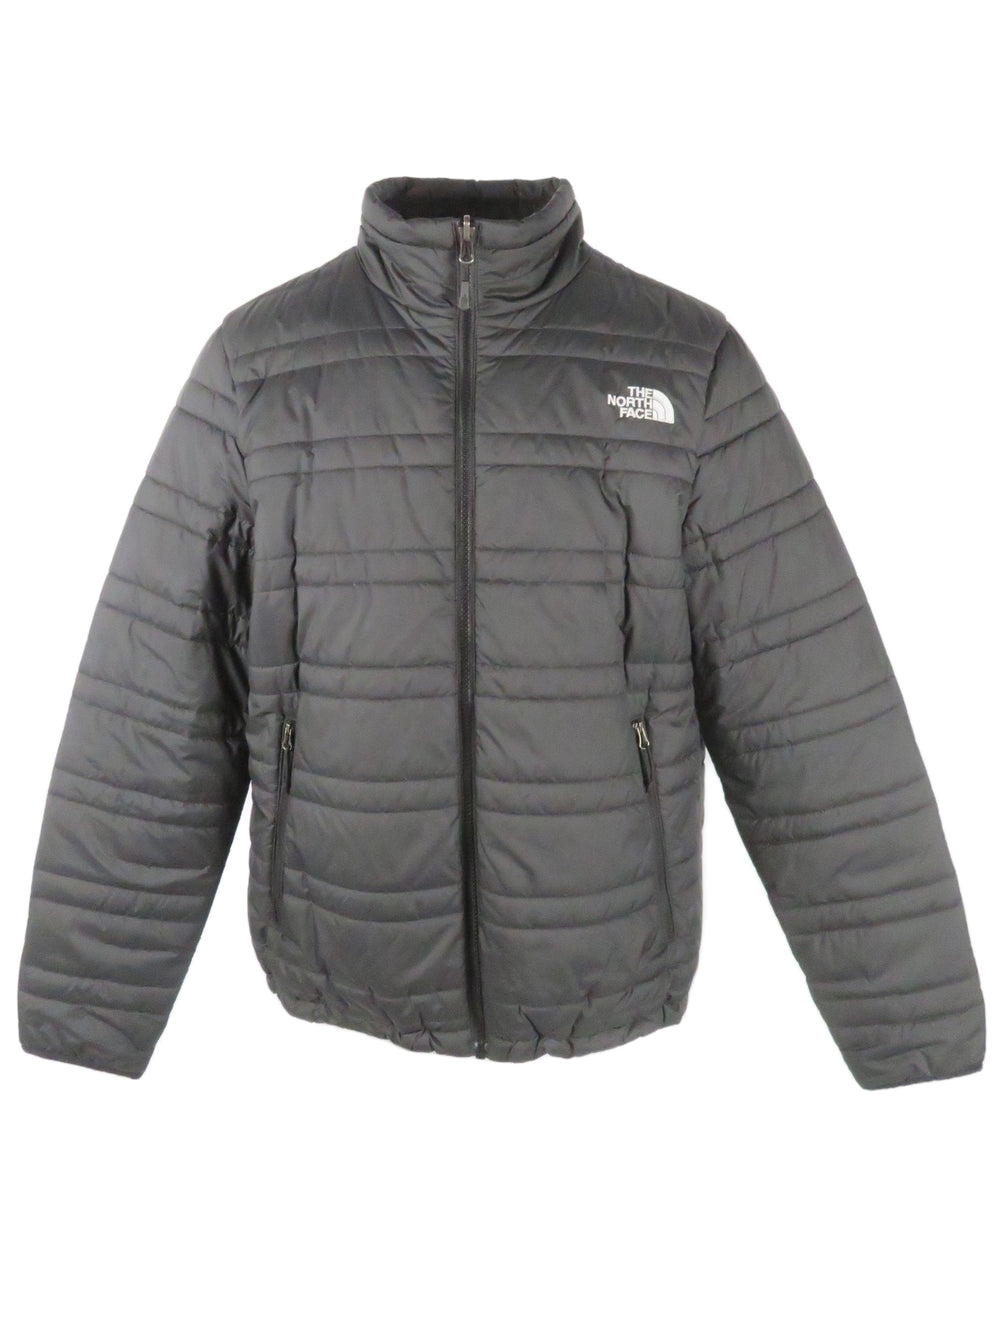 the north face black front zip puffer jacket. features 'the north face' logo embroidered at left breast and back right of shoulder. zip hand pockets at sides.